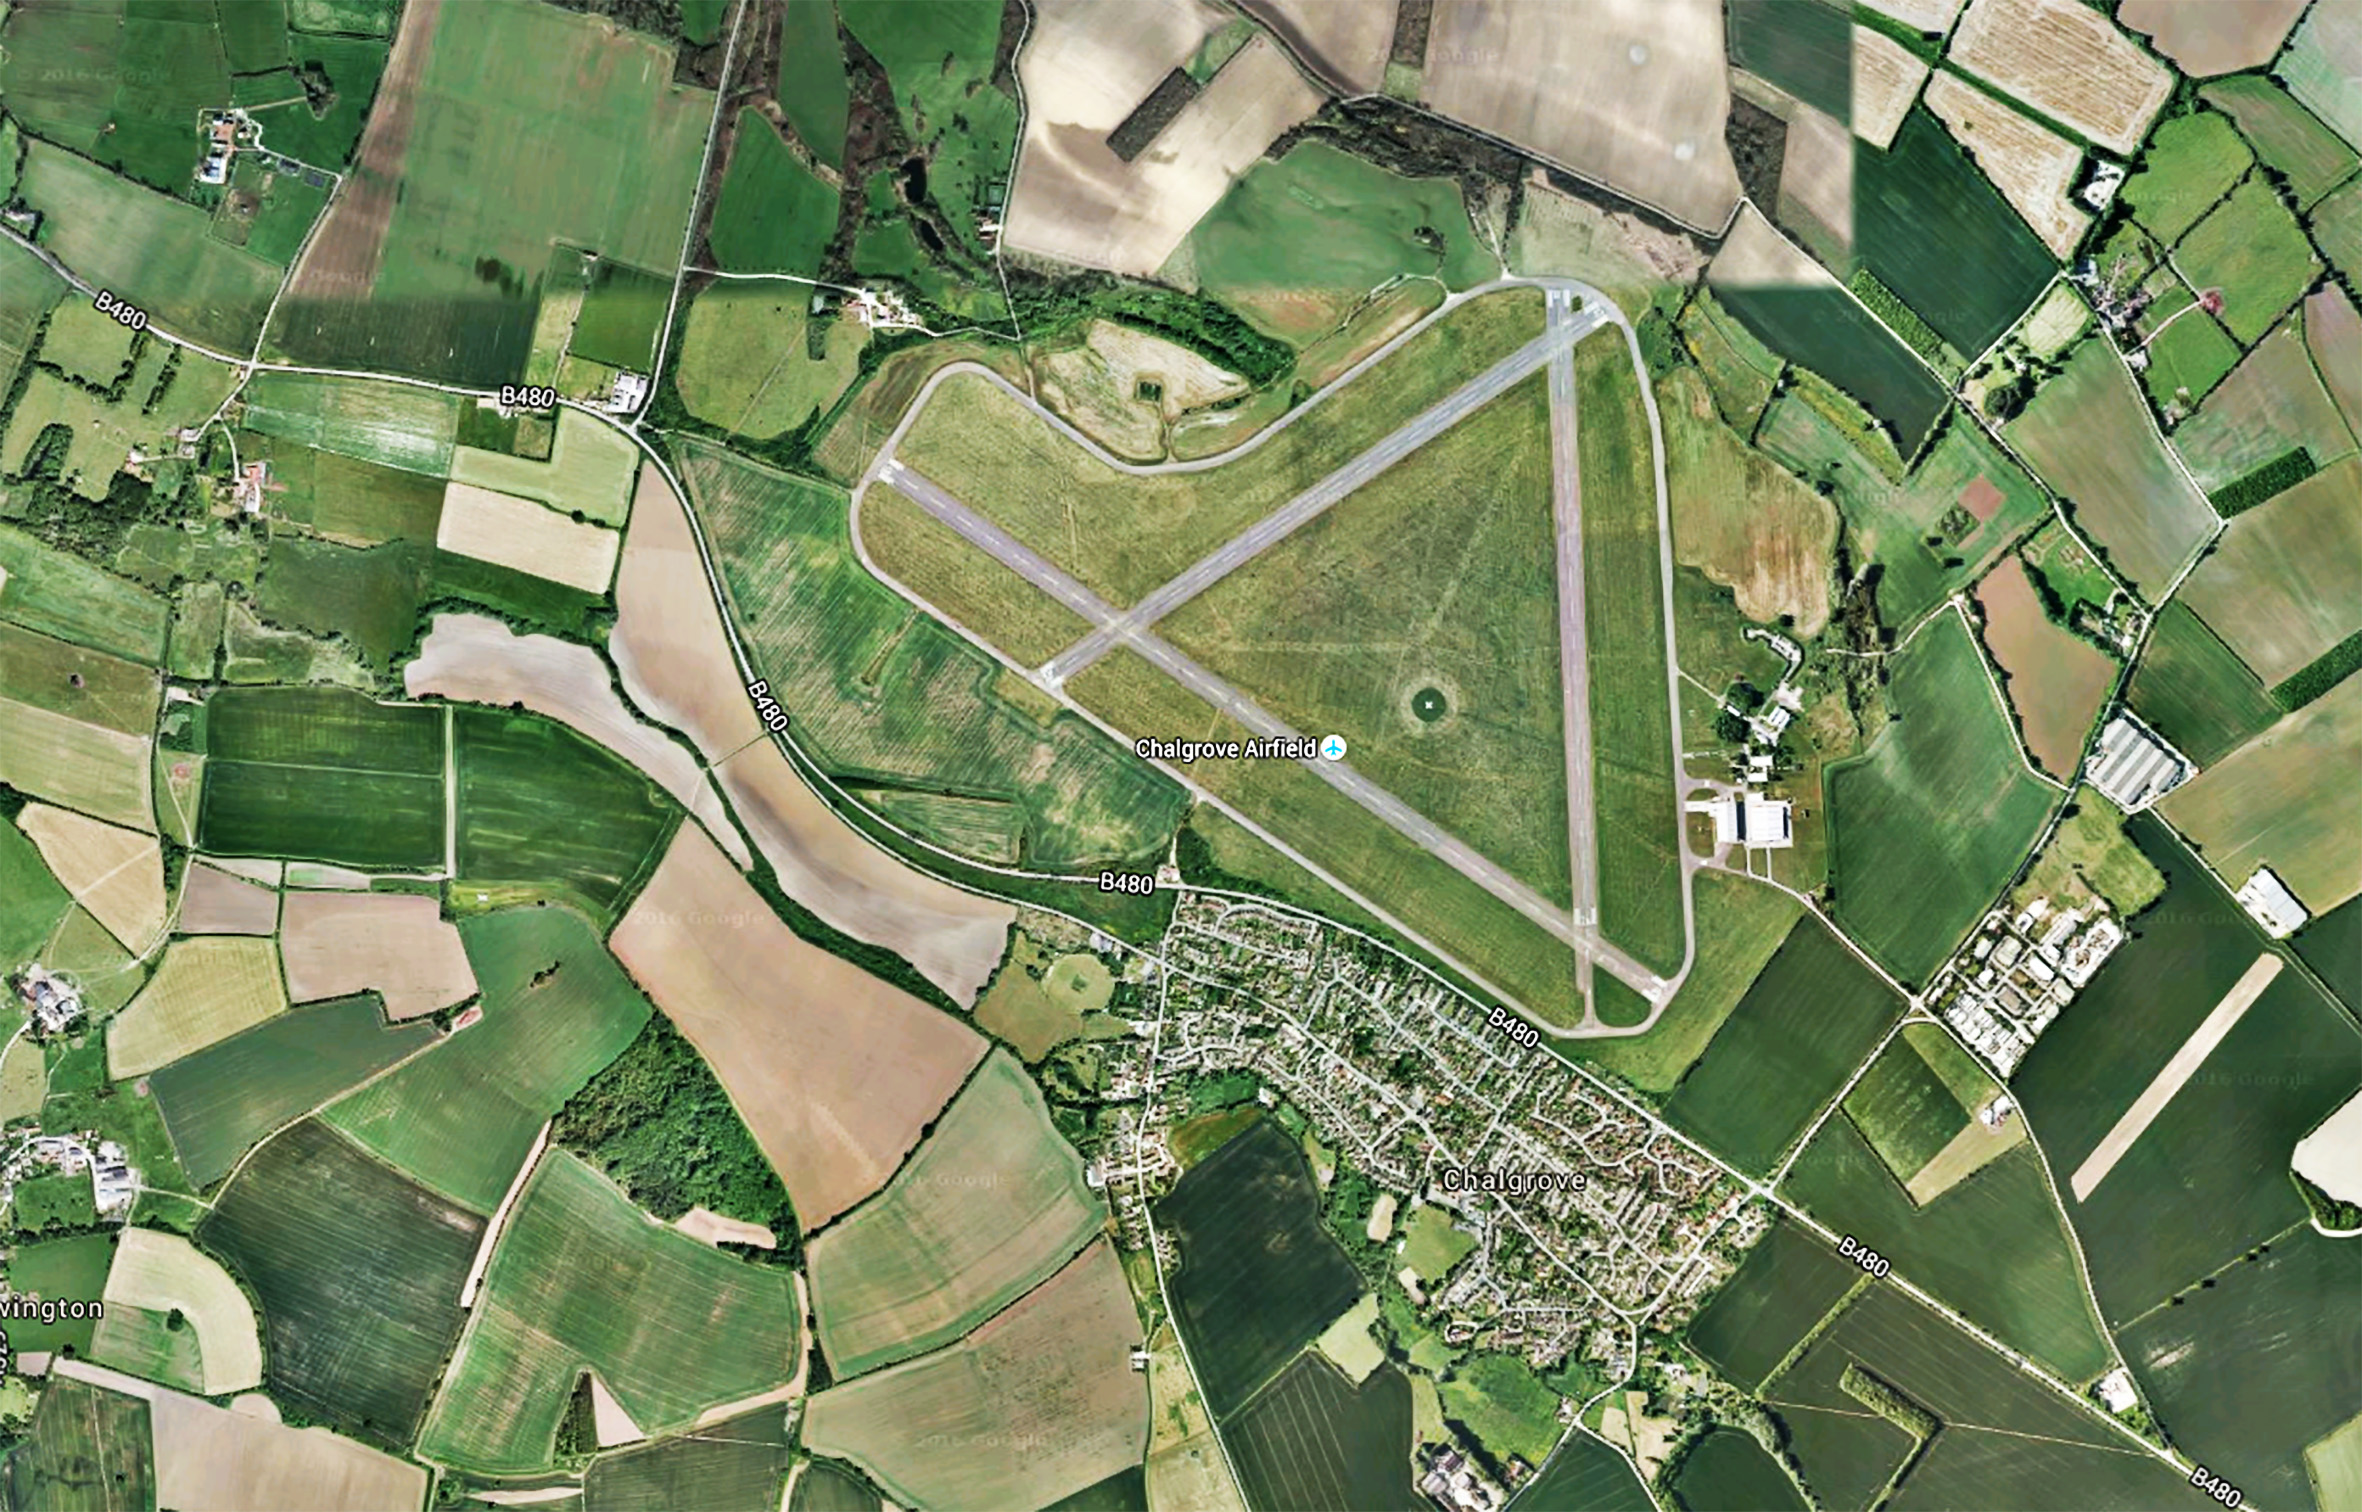 Chalgrove Airfield sale will help raise £225m for public purse says MOD